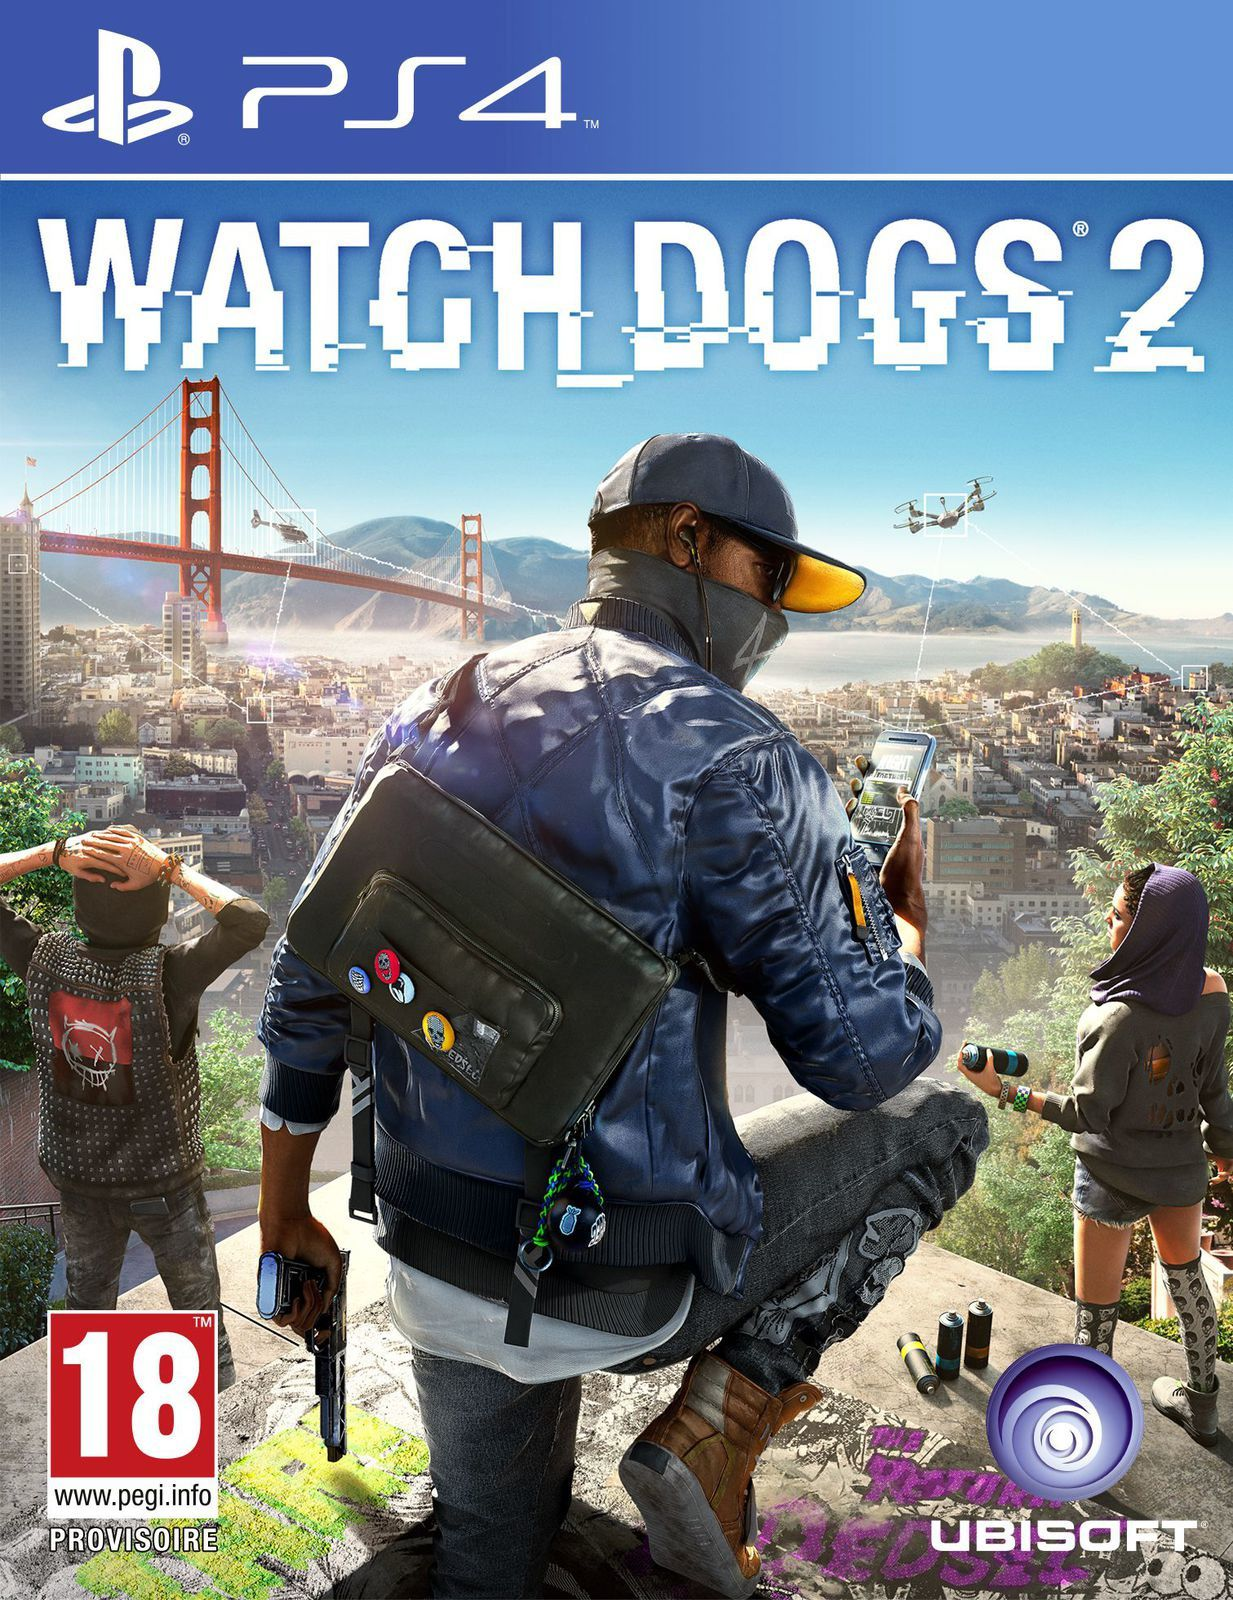 TEST de WATCH DOGS 2 (sur PS4): la cool attitude des hackers!